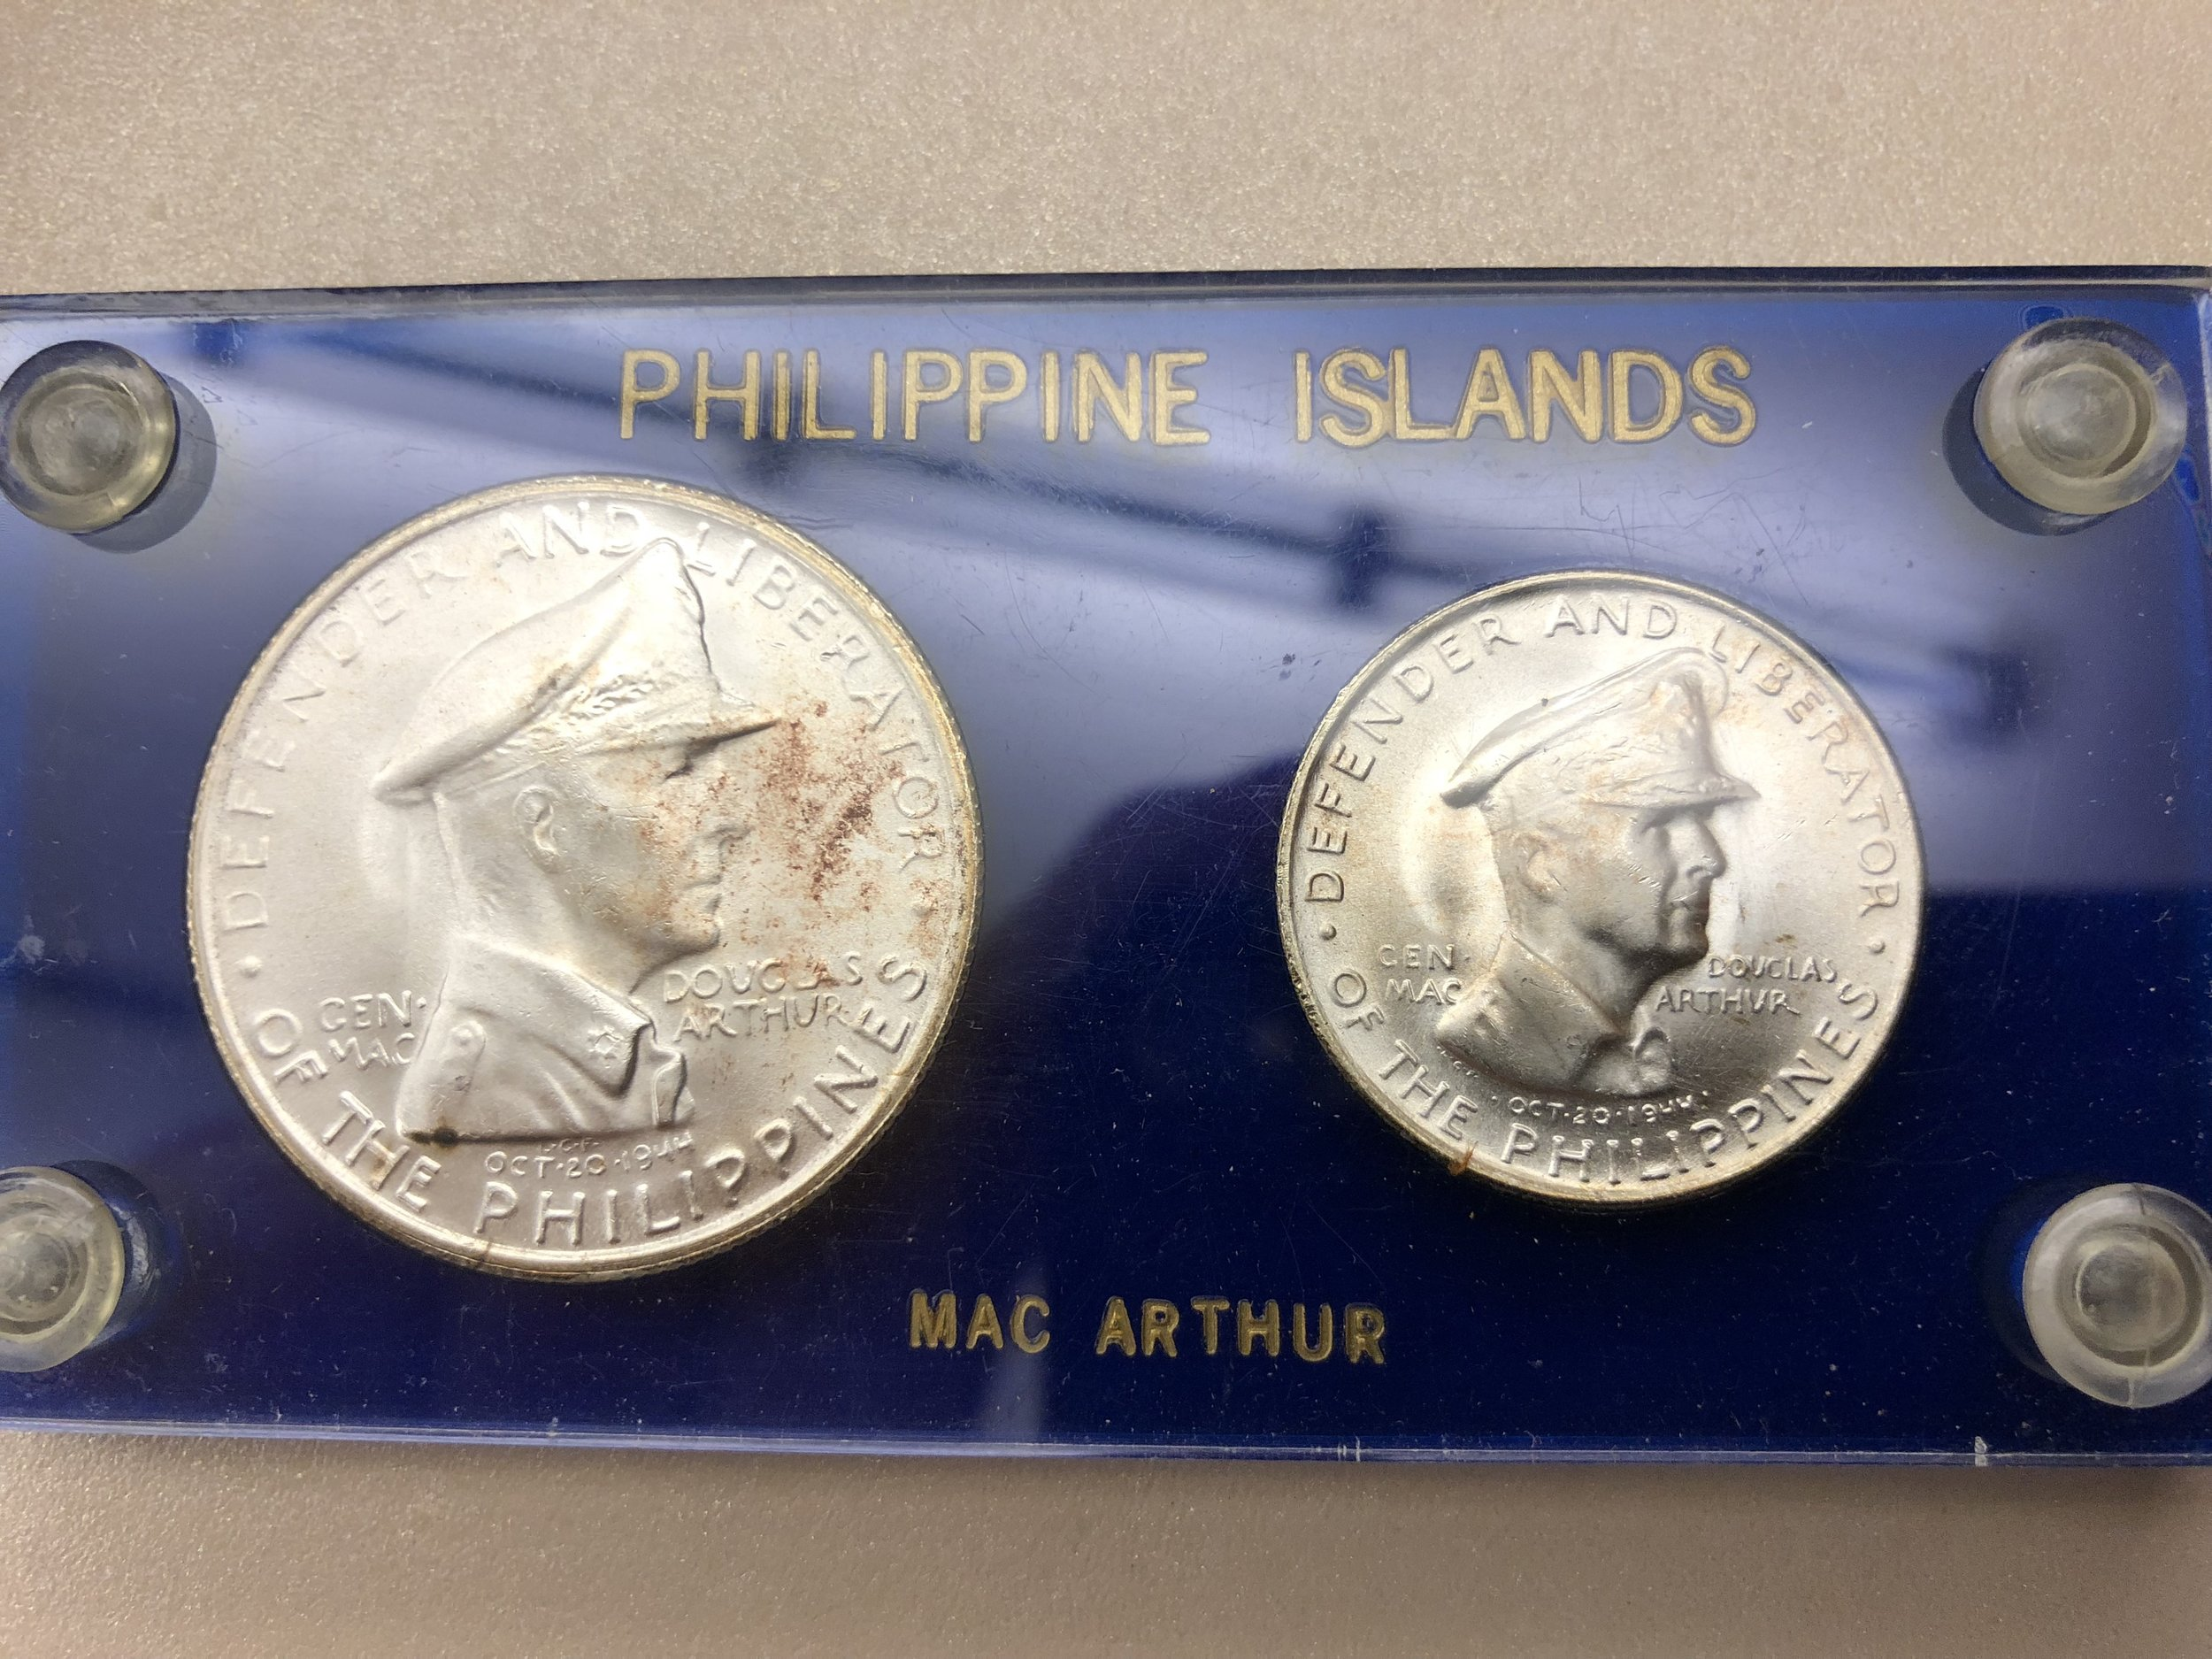 Reverse has figure of General Douglas MacArthur Defender and Liberator of the Philippines.  Small print date Oct. 20, 1944.